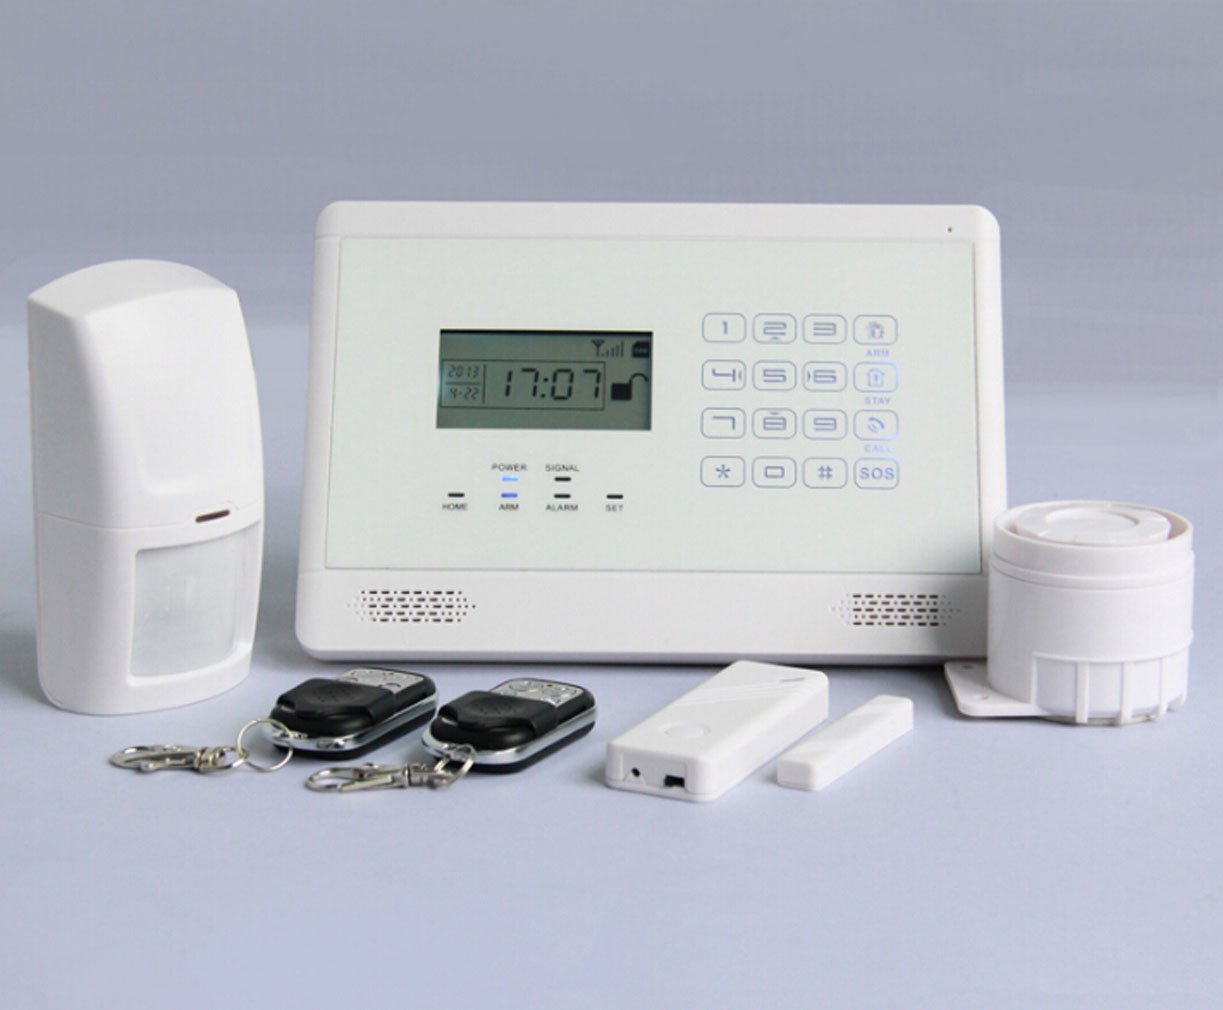 Horich Professional Touch keypad & LCD Display Wireless Home Security GSM Alarm System Kit